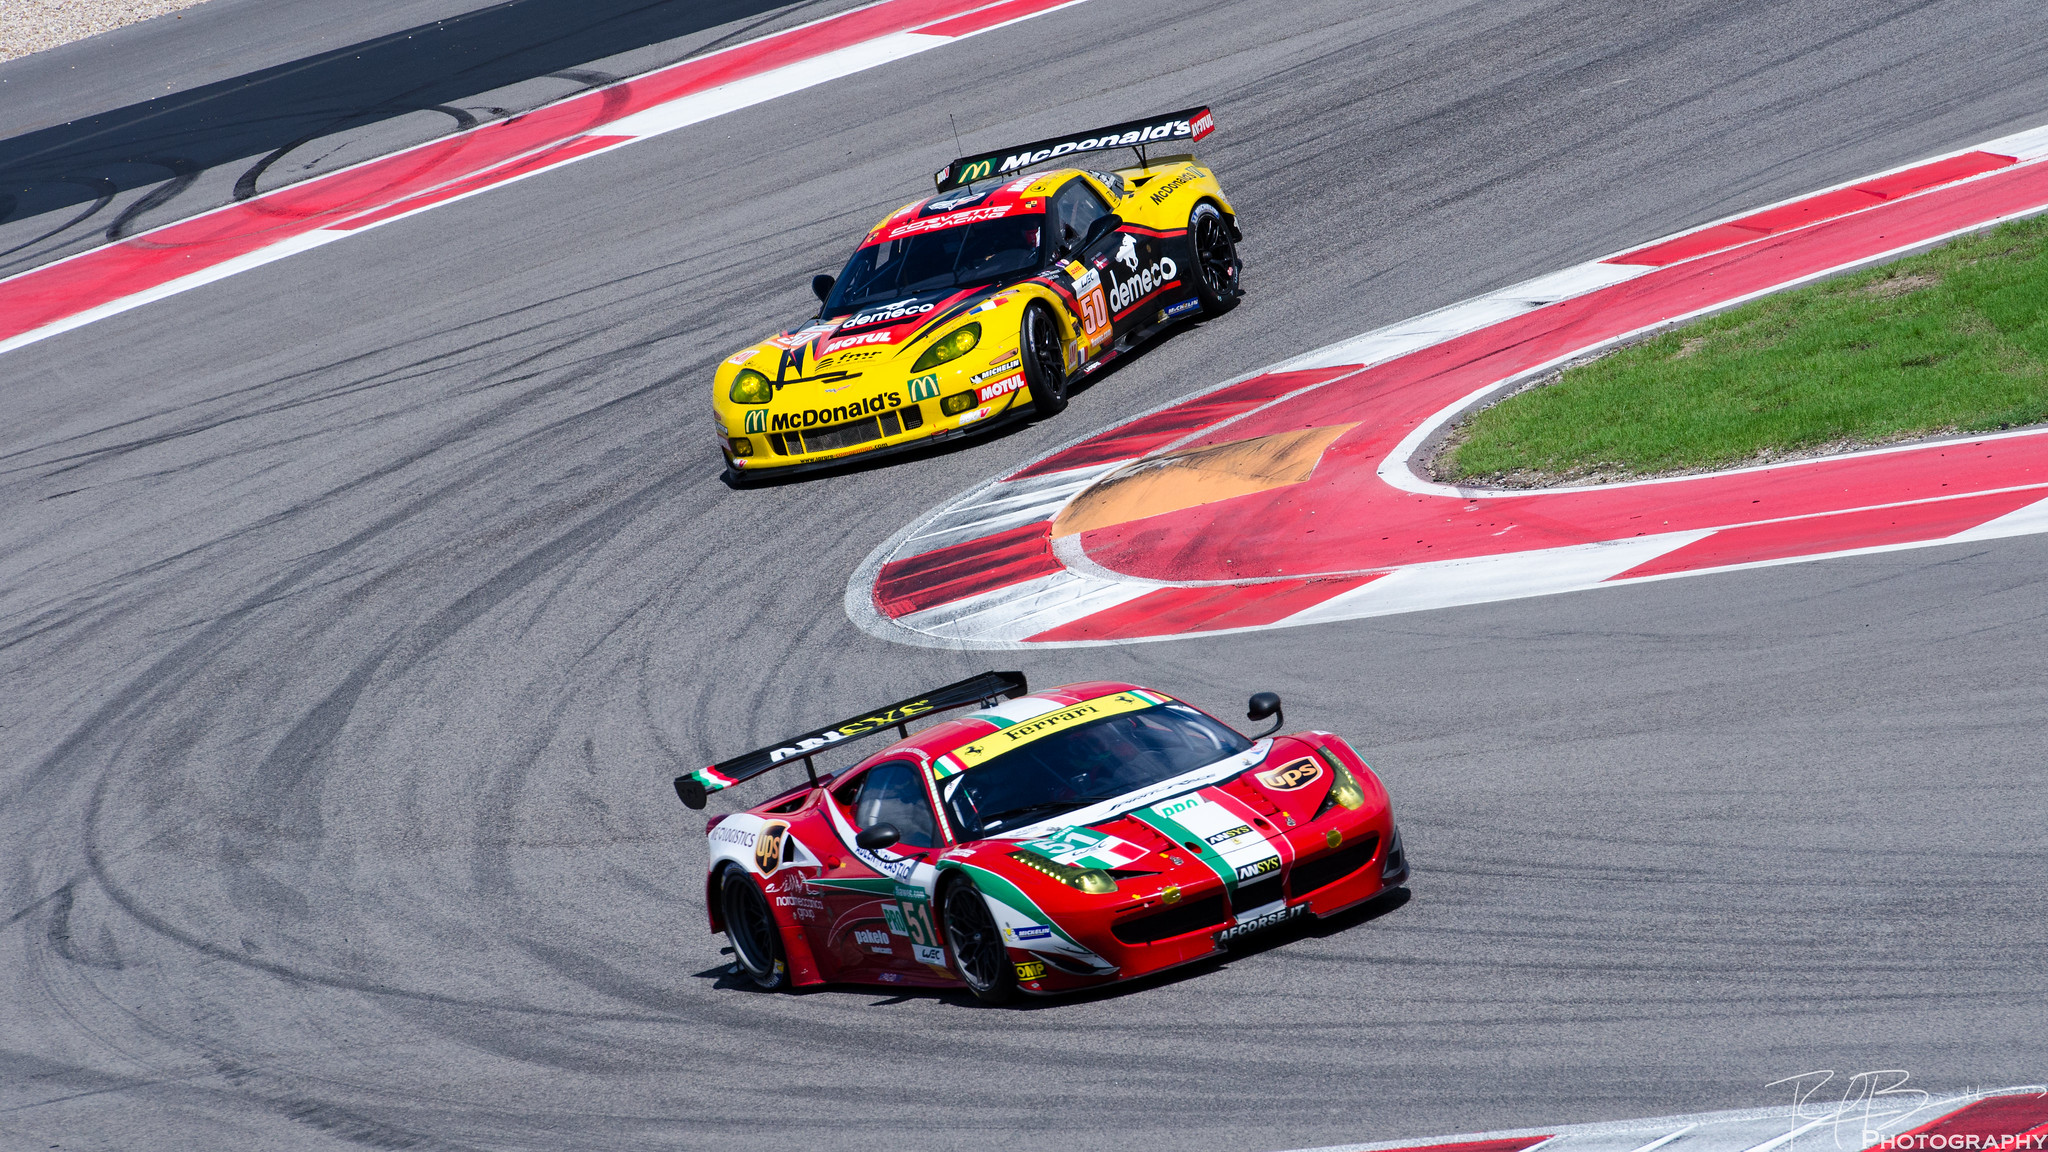 Labre Competition C6.R and AF Corse Ferrari 458